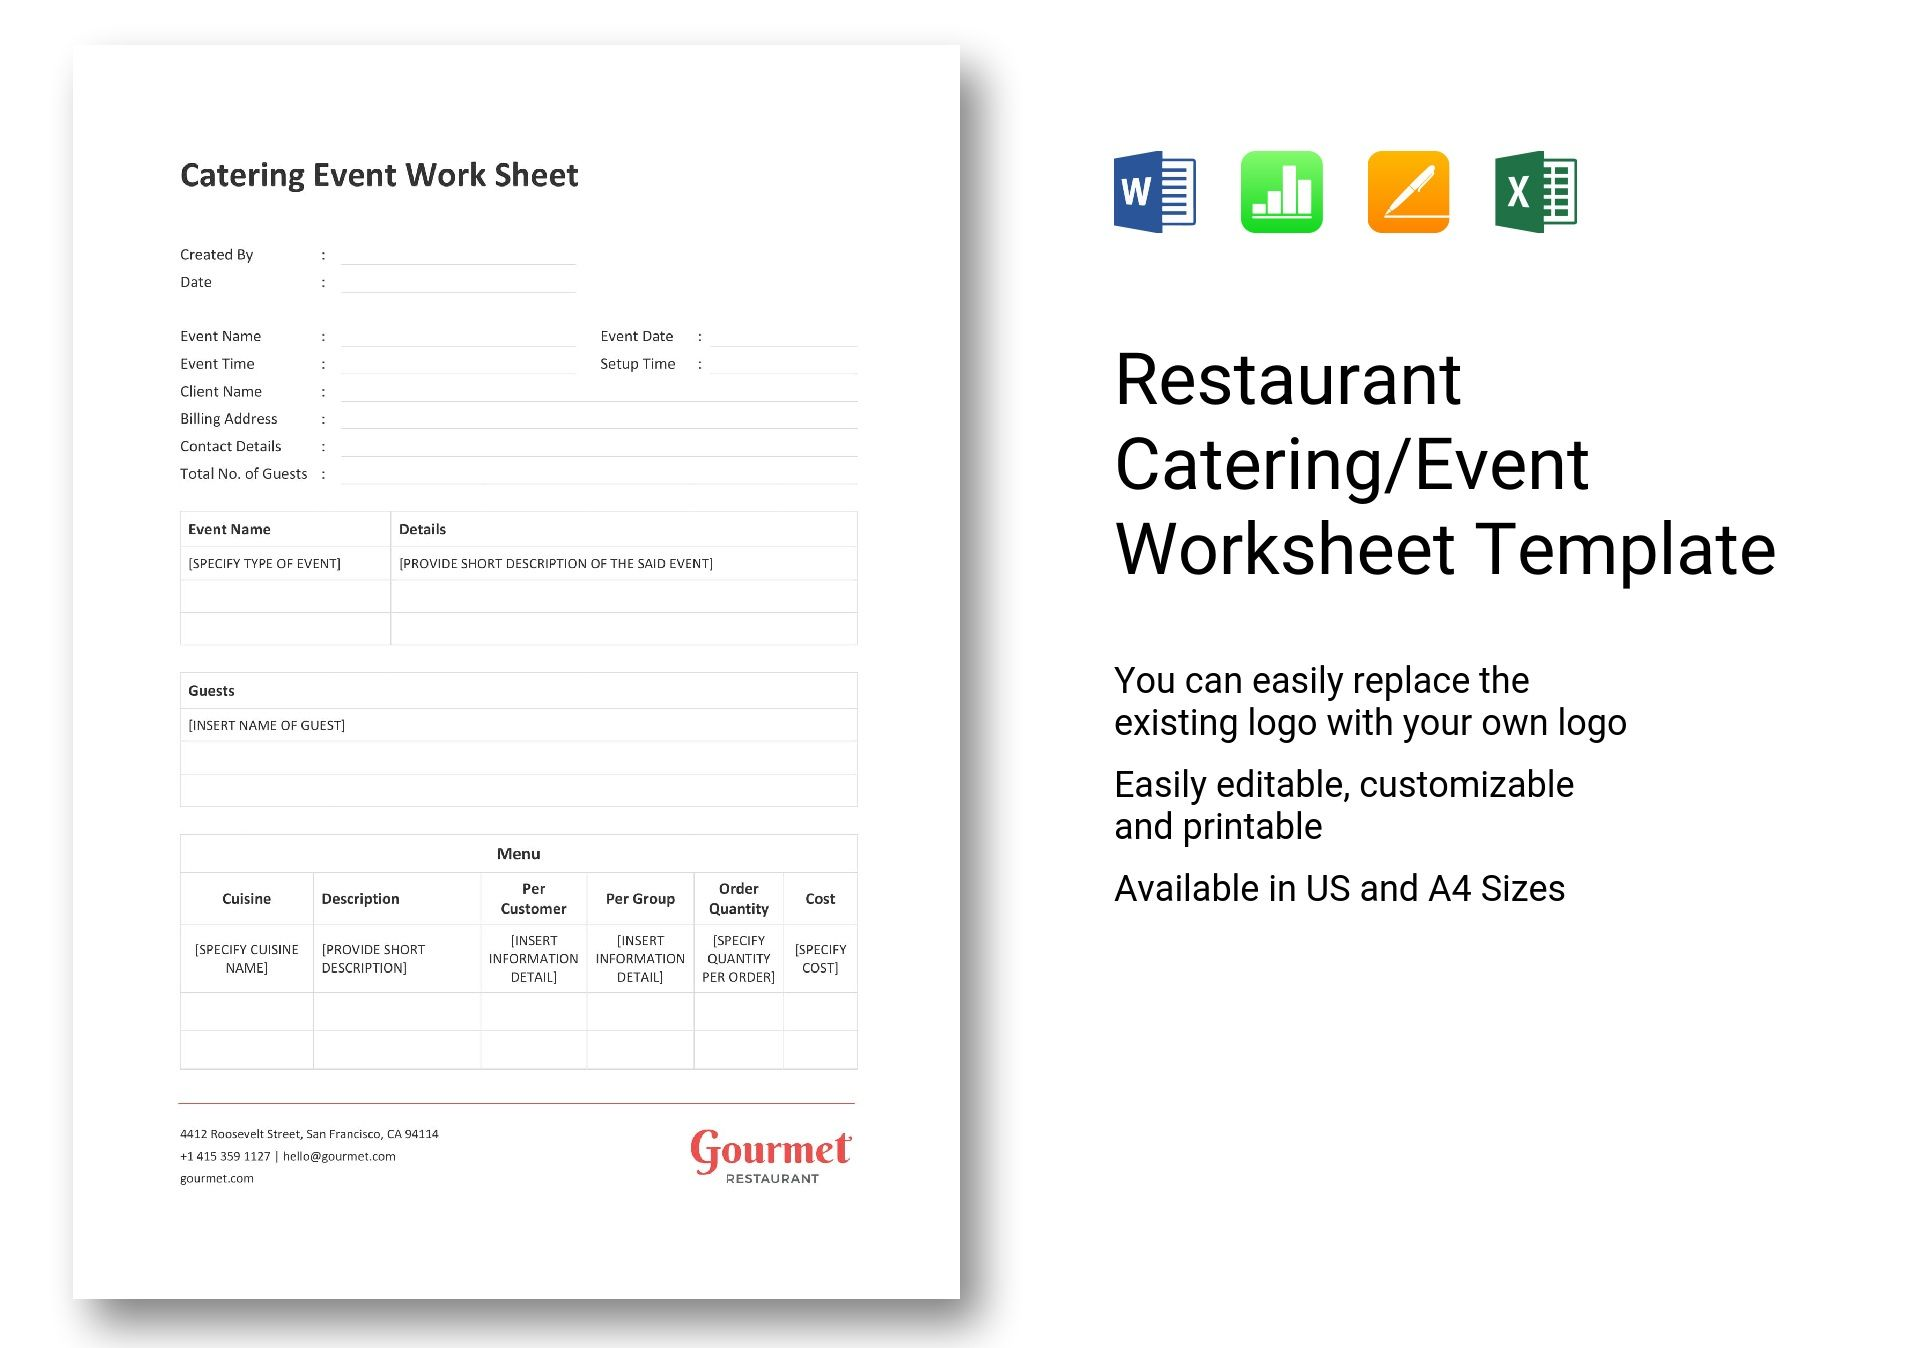 Restaurant Catering Event Worksheet Template In Word Excel Apple Pages Numbers